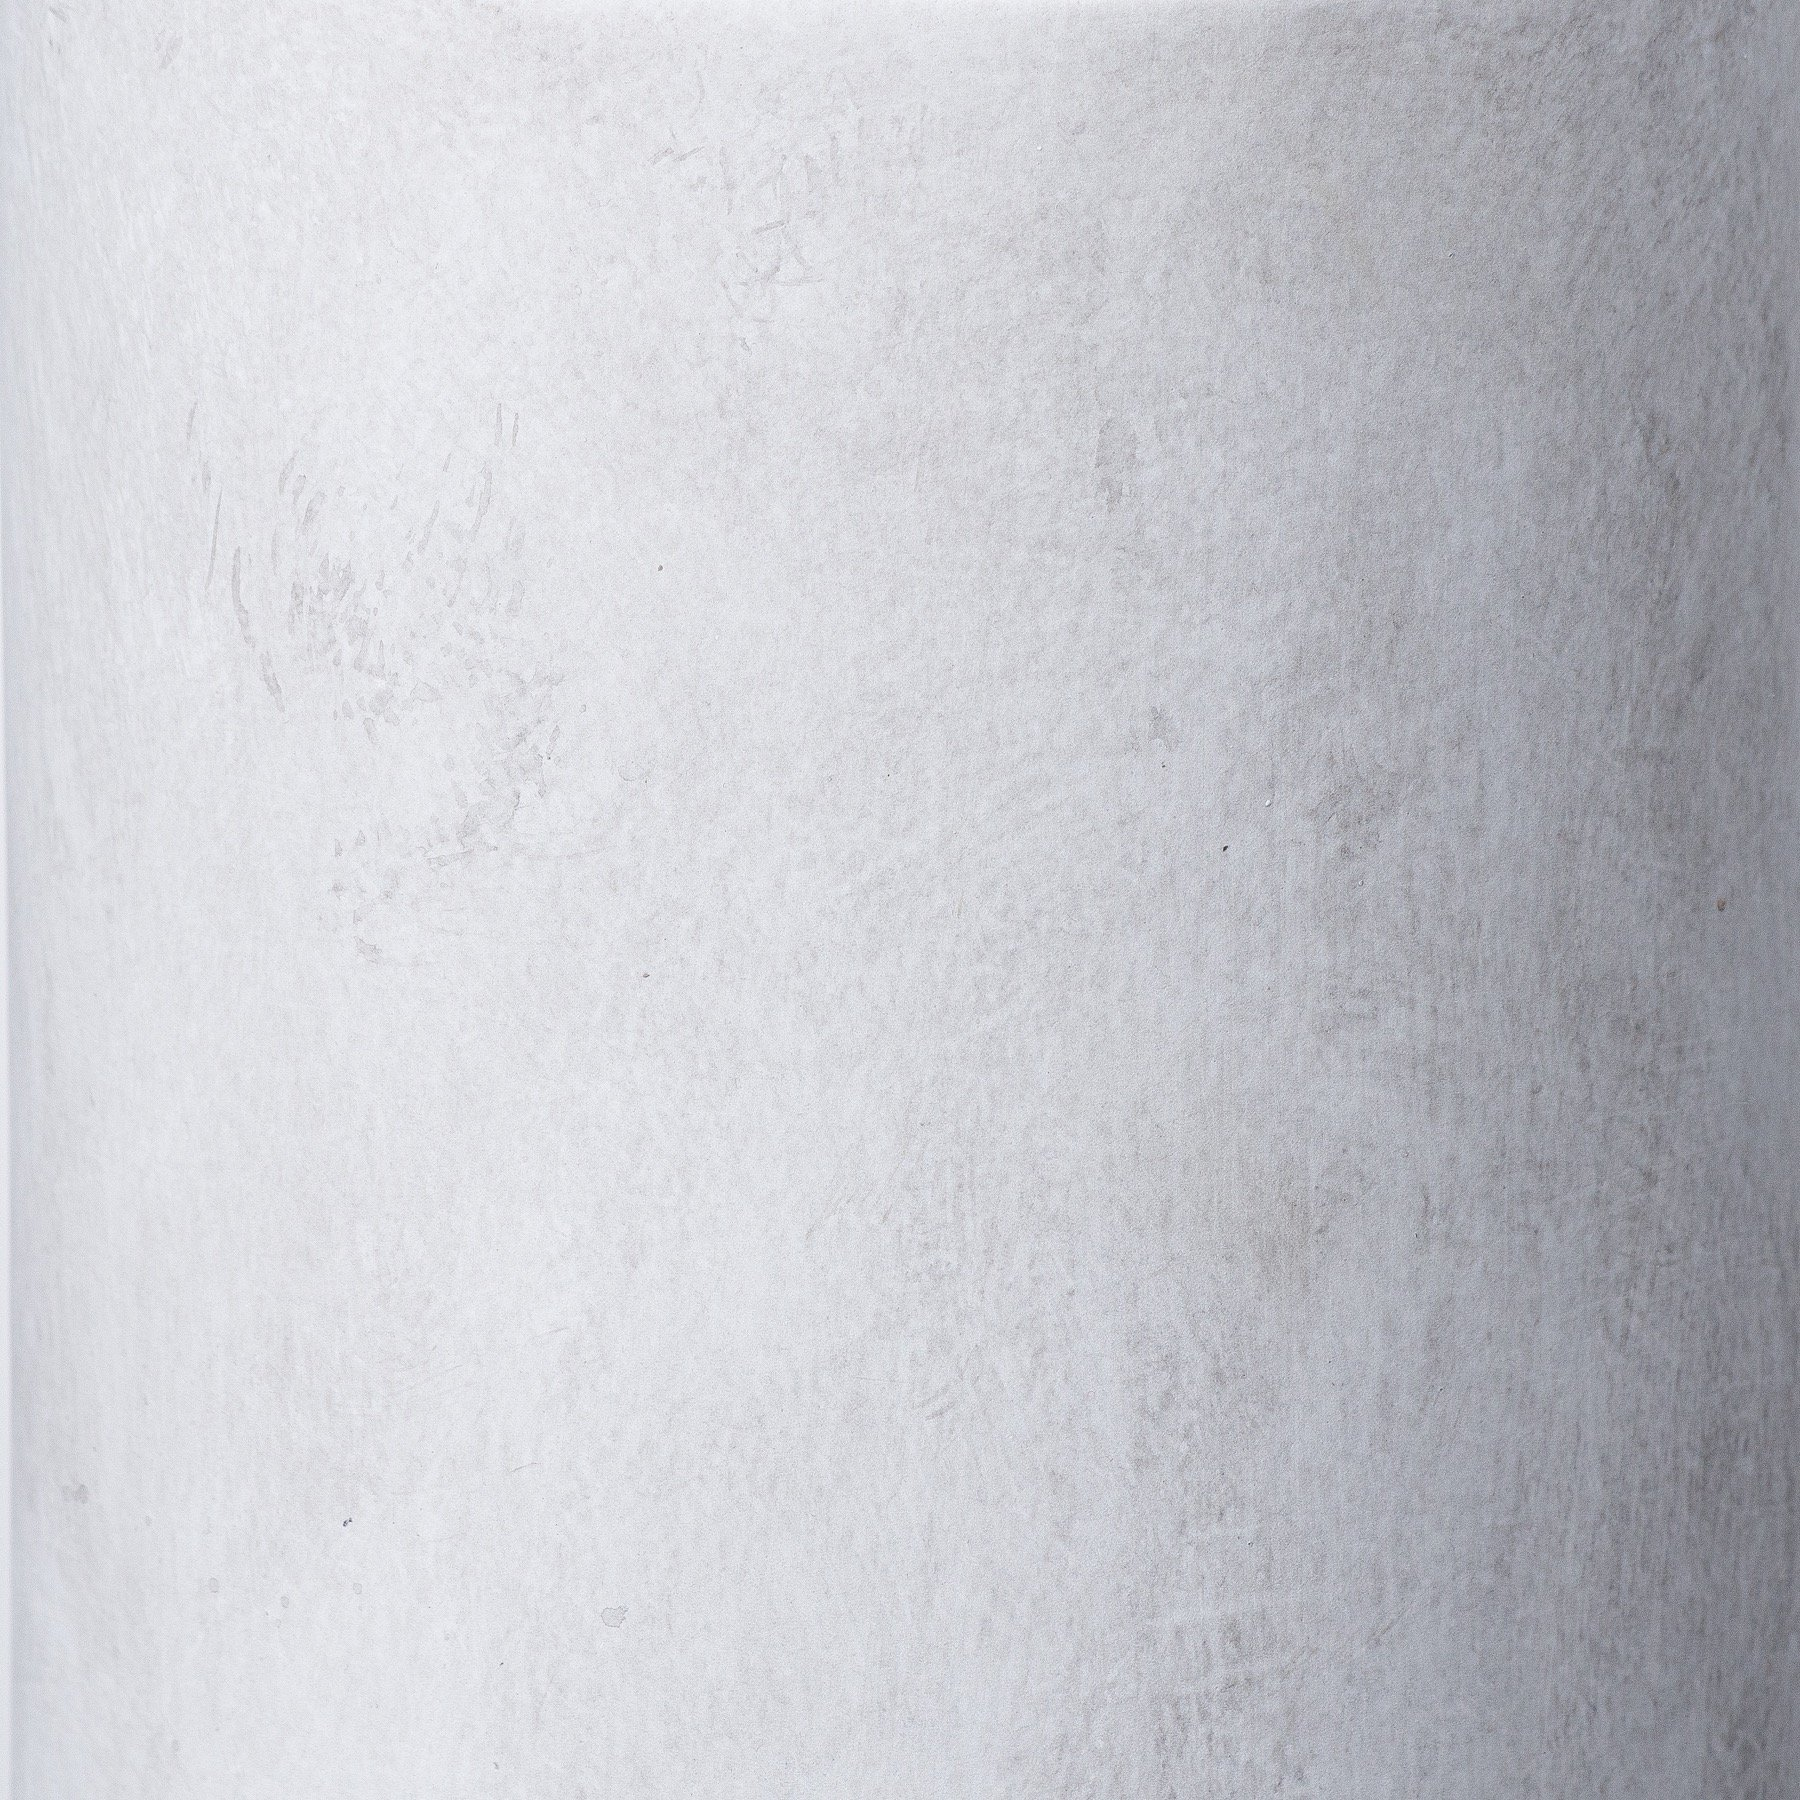 Darcy Sutra Large Vase - Image 2